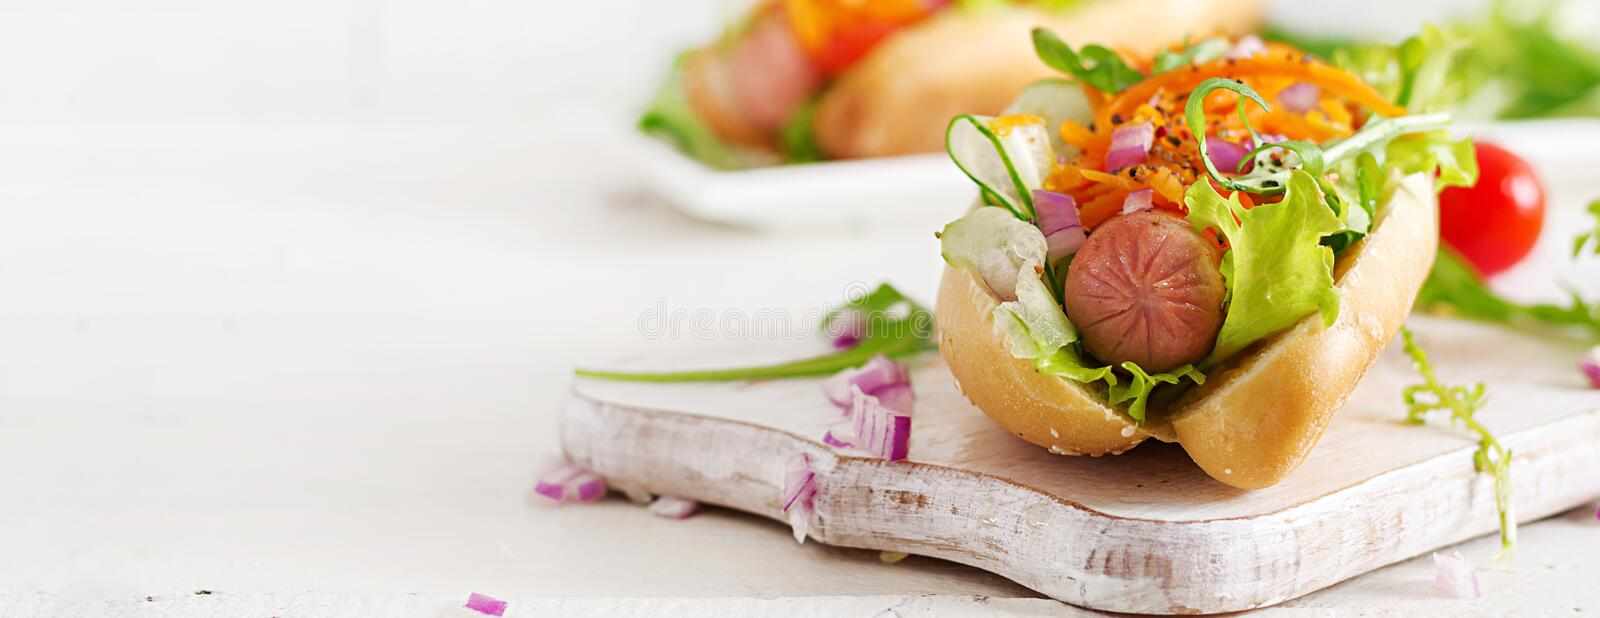 Hot dog with cucumber, carrot, tomato and lettuce on wooden background. Fast food menu. Banner royalty free stock image